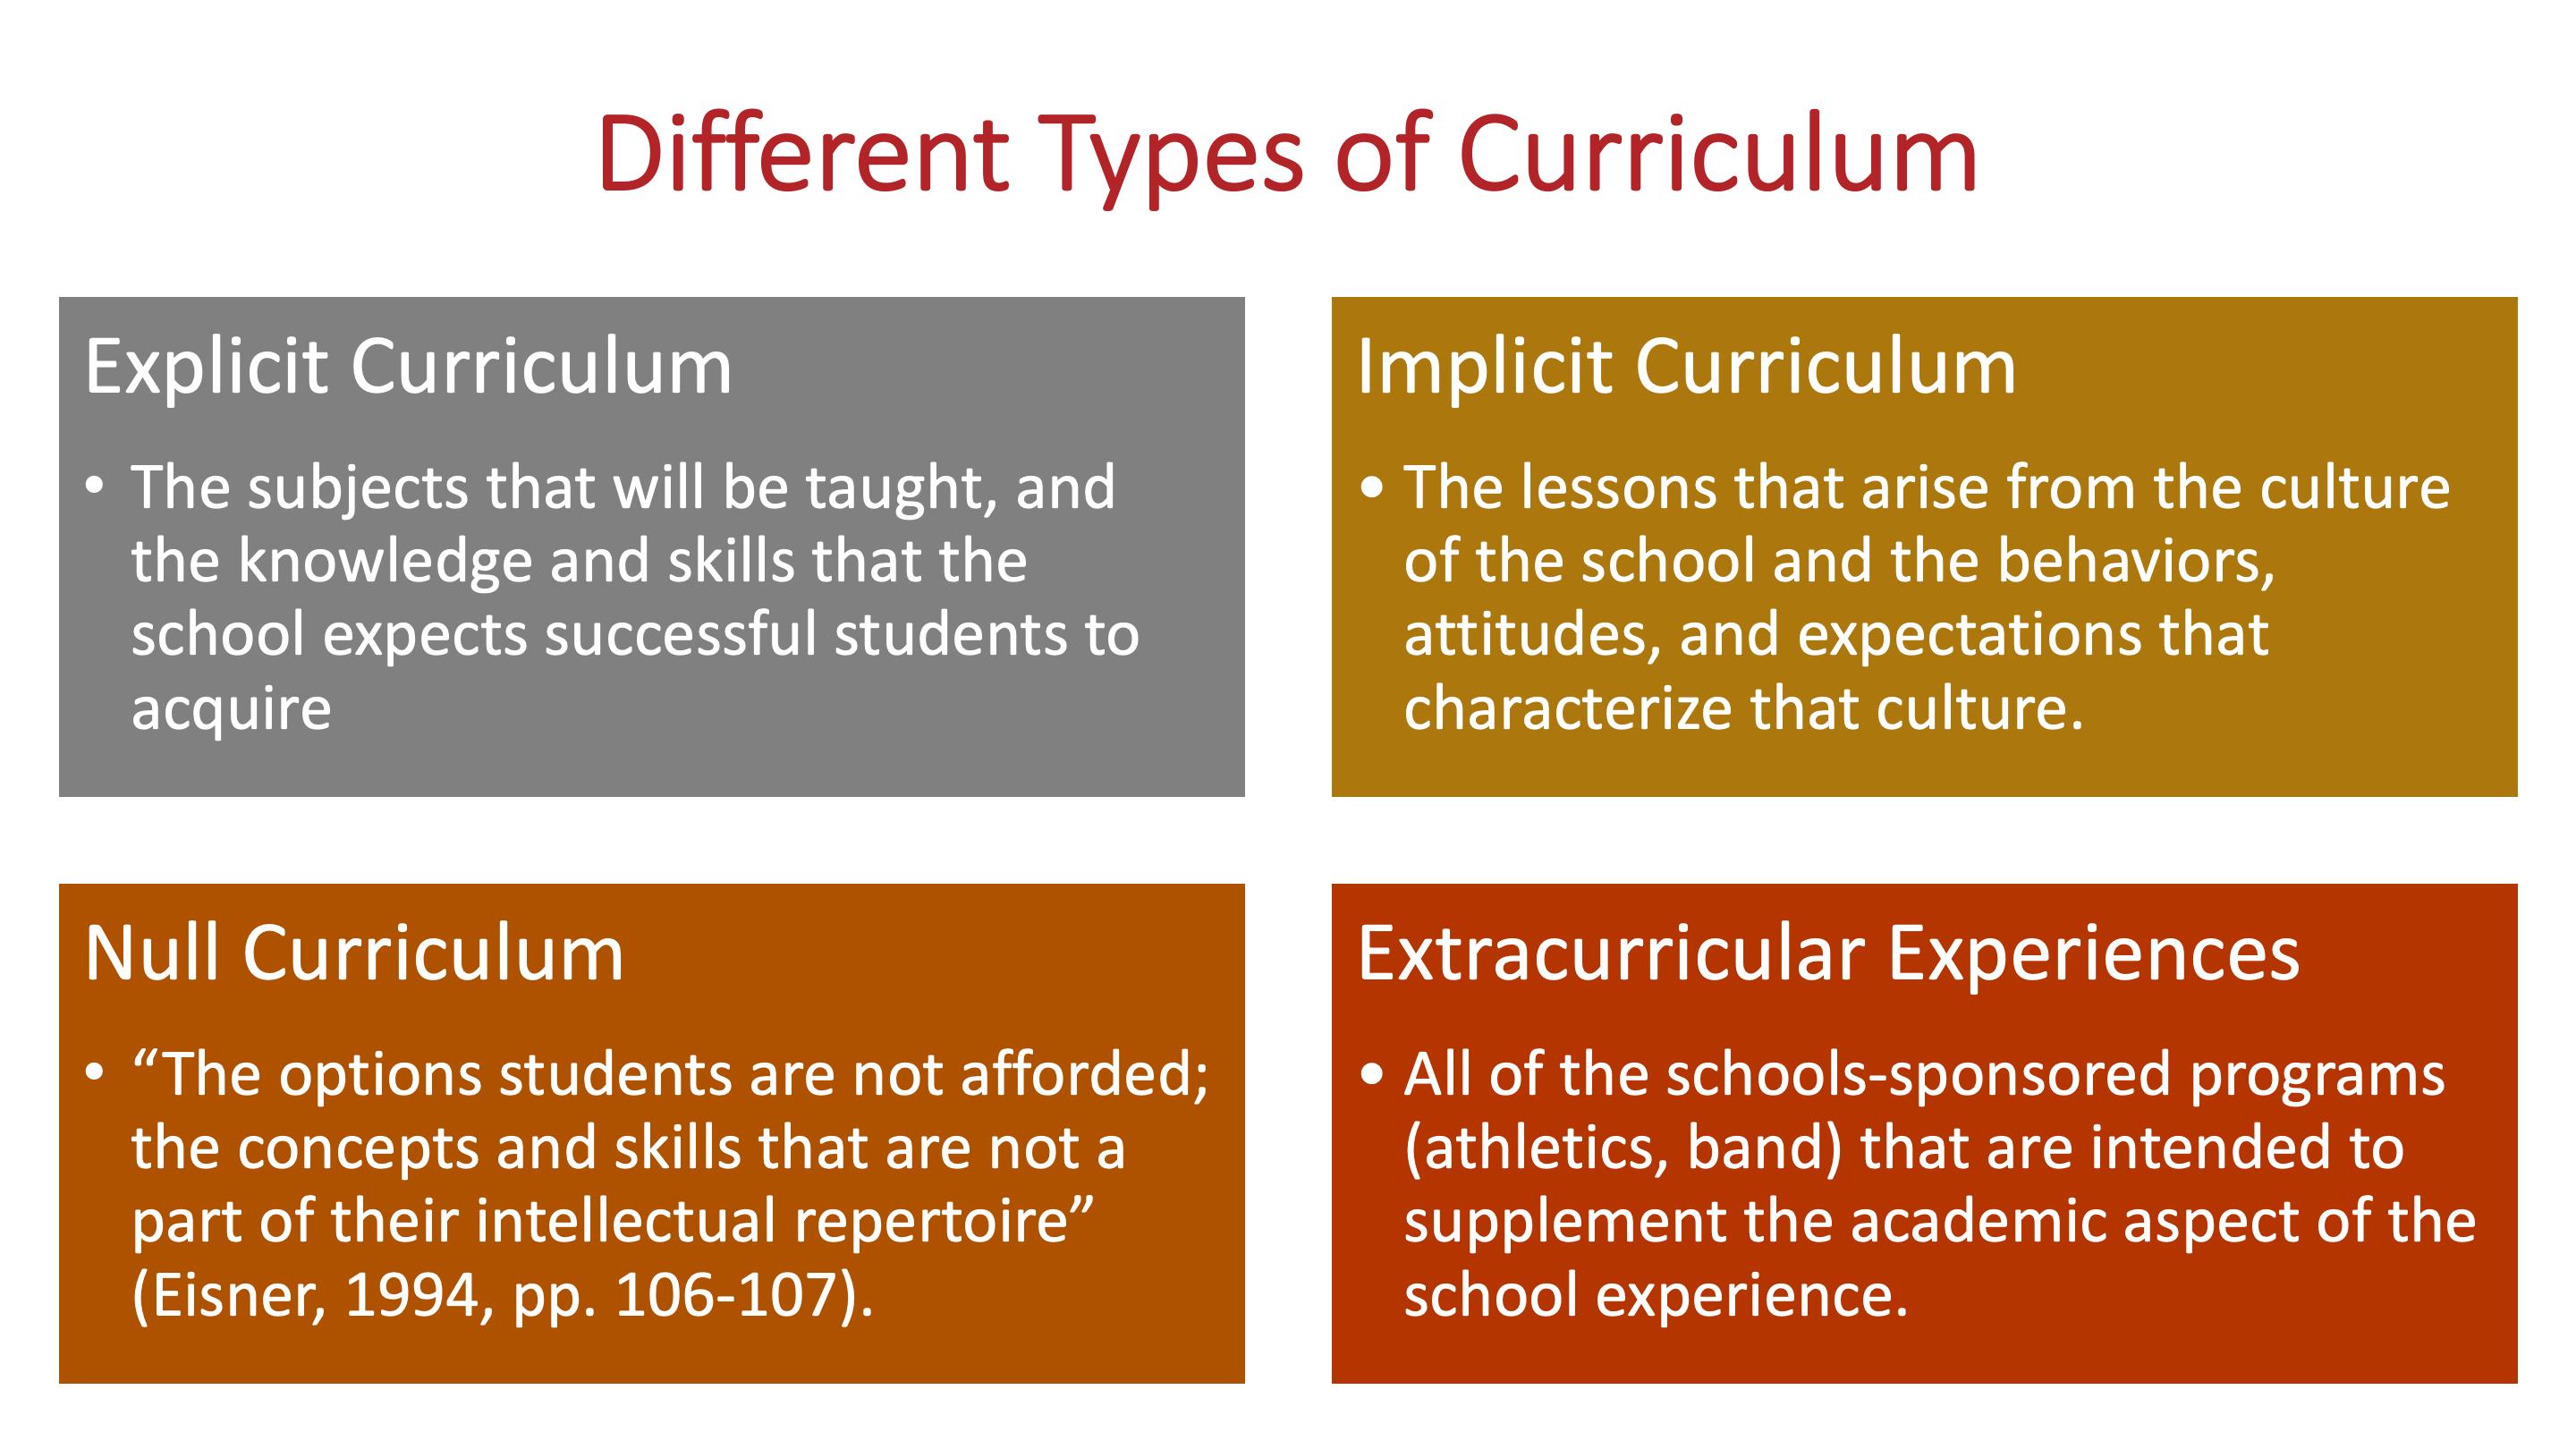 Different Types of Curriculum Explicit Curriculum The subjects that will be taught, and the knowledge and skills that the school expects successful students to acquire. Implicit Curriculum The lessons that arise from the culture of the school and the behaviors, attitudes, and expectations that characterize that culture. Null Curriculum The options students are not afforded the concepts and skills that are not a part of their intellectual repertoire. Eisner, 1994. Extracurricular Experiences All of the schools-sponsored programs (athletics, band) that are intended to supplement the academic aspect of the school experience.